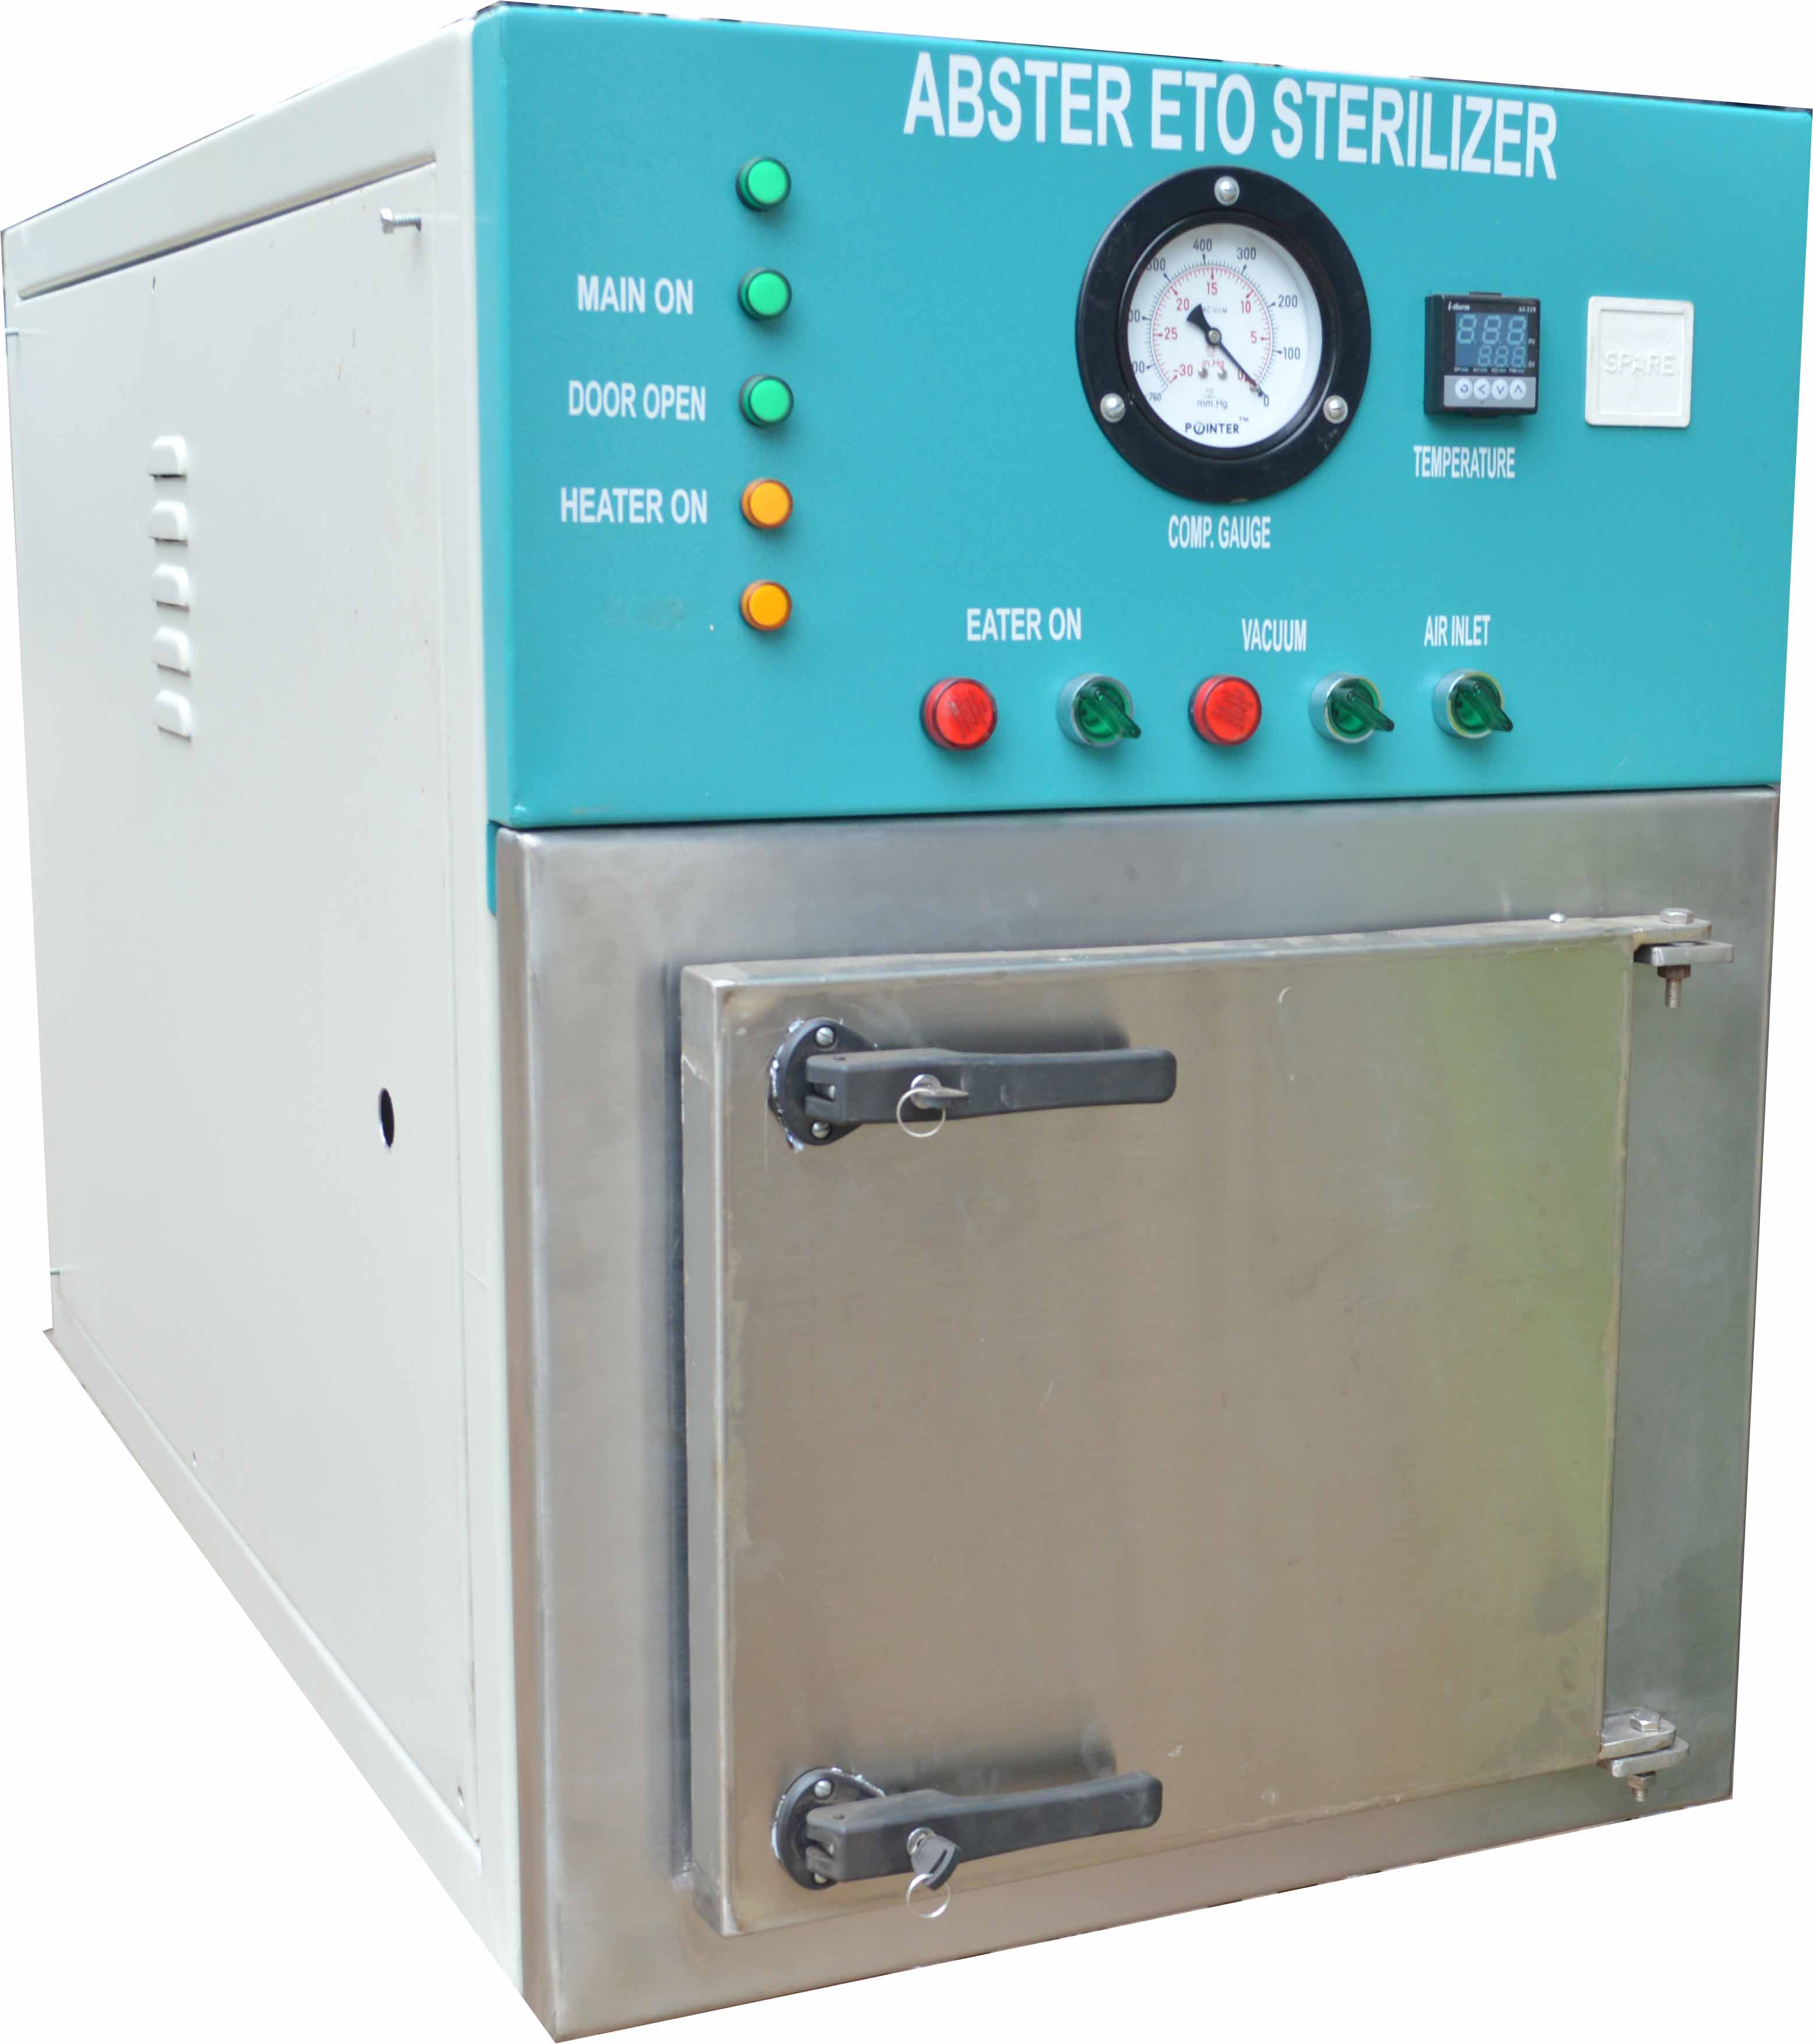 eto sterilizer for hospital, ahmedabad, gujarat, India